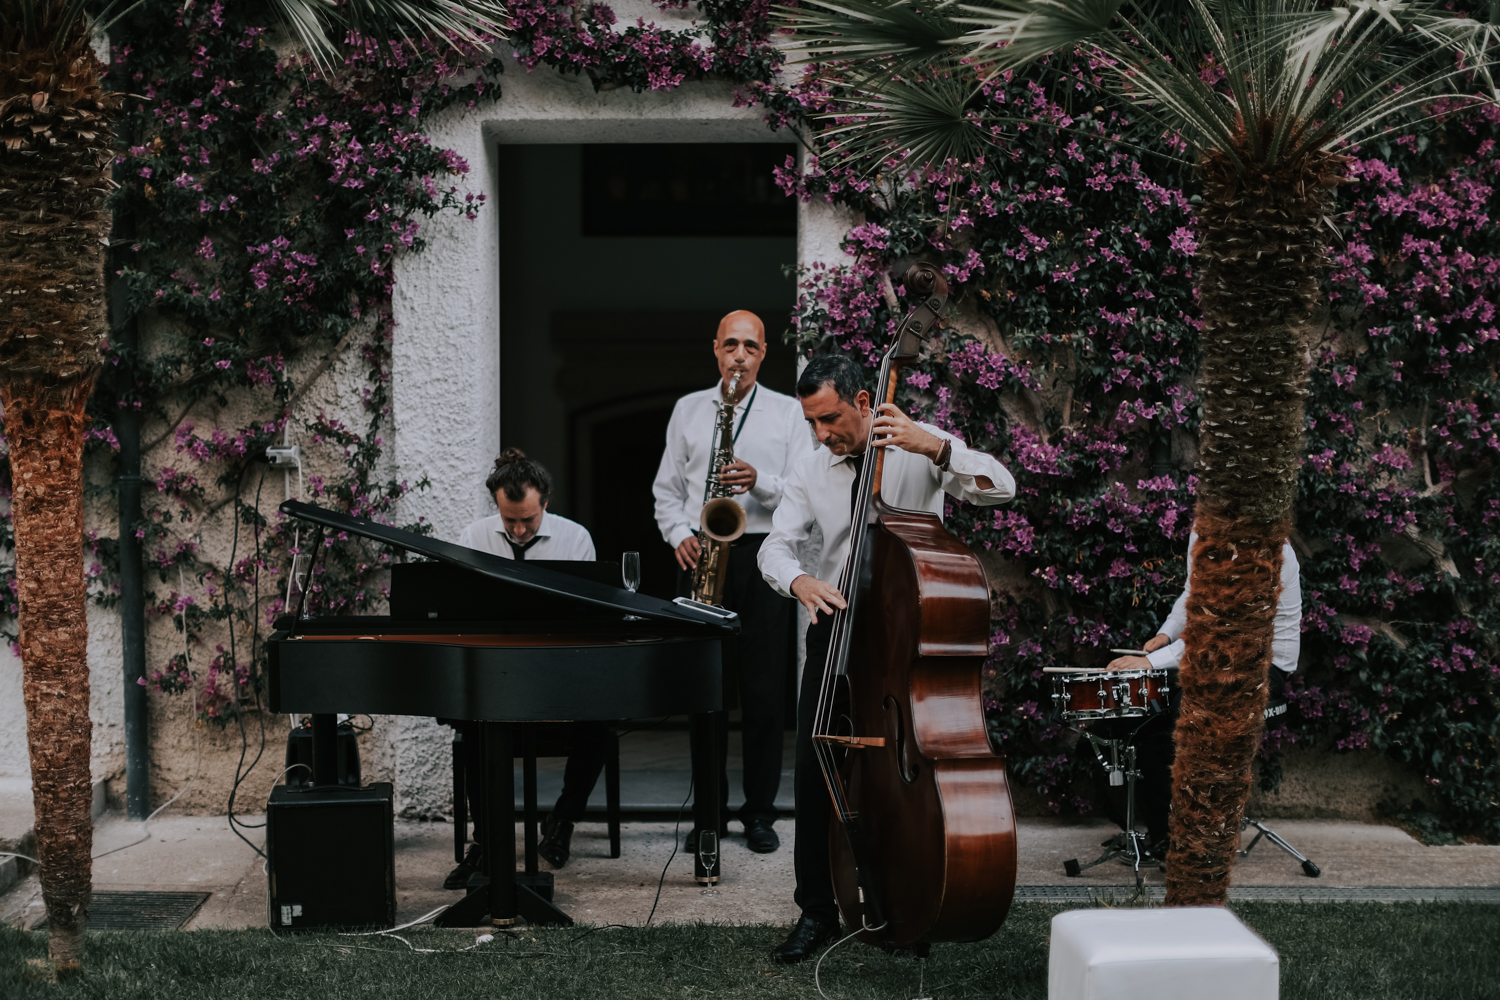 http://www.weddingamalfi.com/wp-content/uploads/Alessandro-and-Diego-wedding-music.jpg